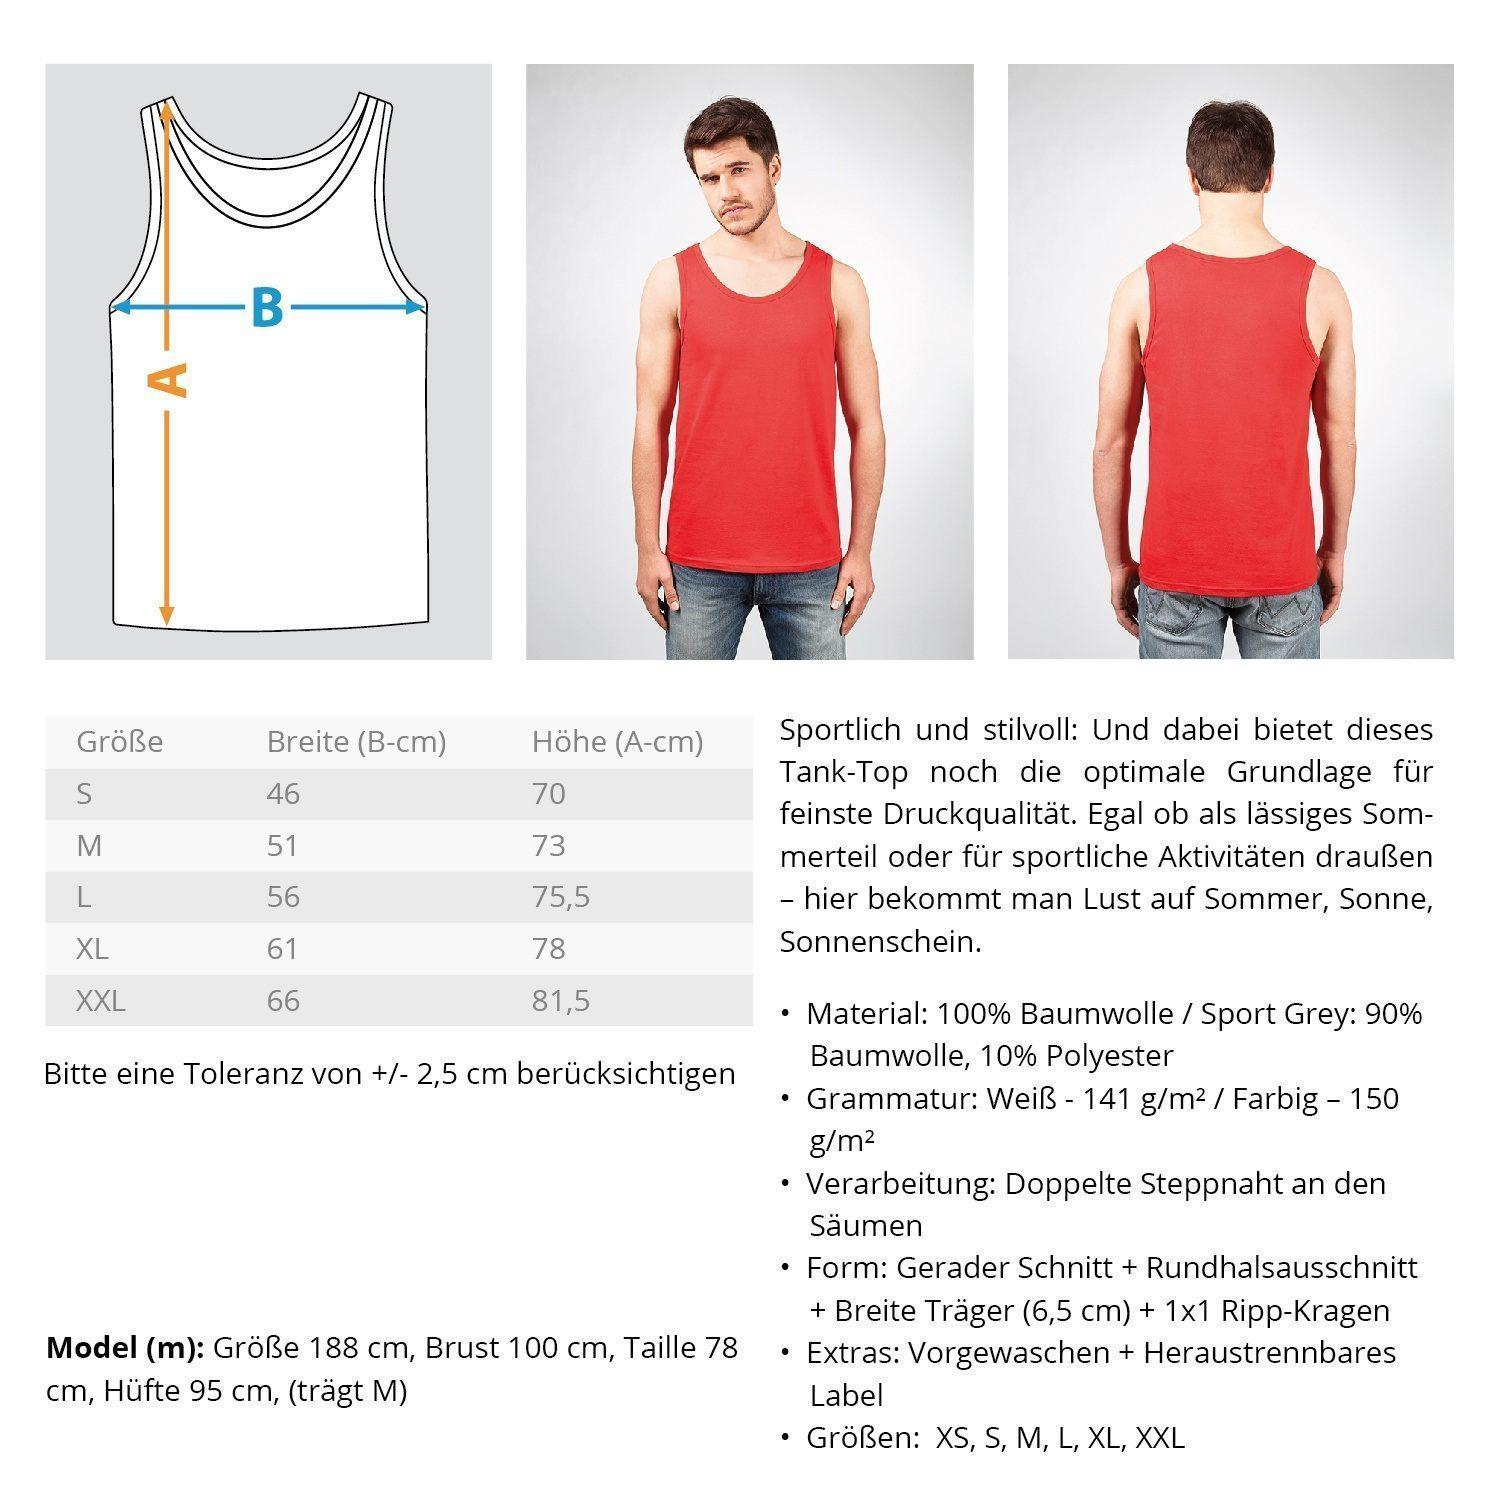 Black Snake Recordings Collection - Men's Tank Top Men's Tank Top - Rave On!® the club & techno scene shop for cool young fashion streetwear style & fashion outfits + sexy festival 420 stuff